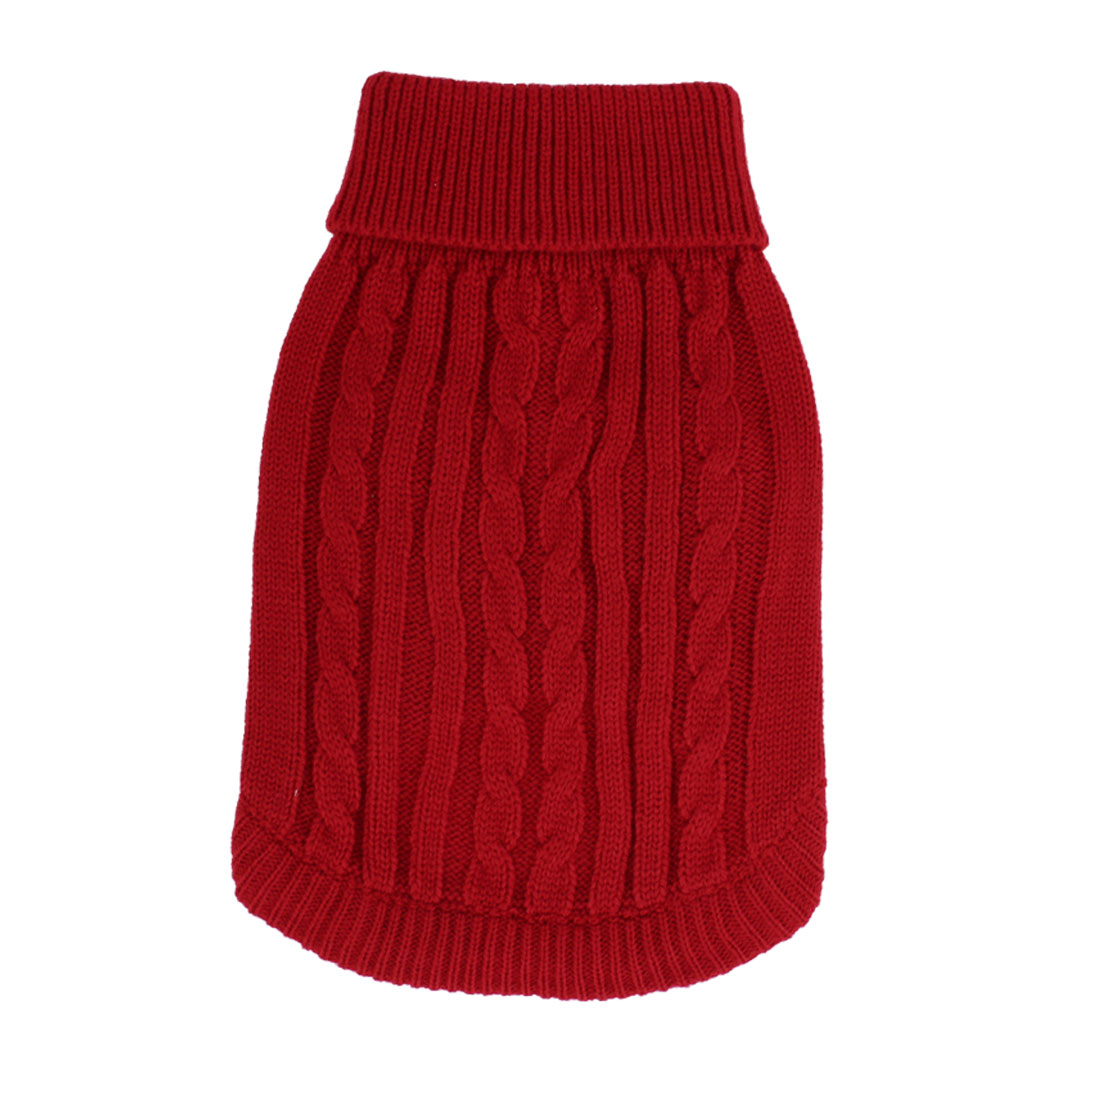 Pet Dog Doggy Ribbed Cuff Twisted Knitwear Turtleneck Apparel Sweater Red Size S